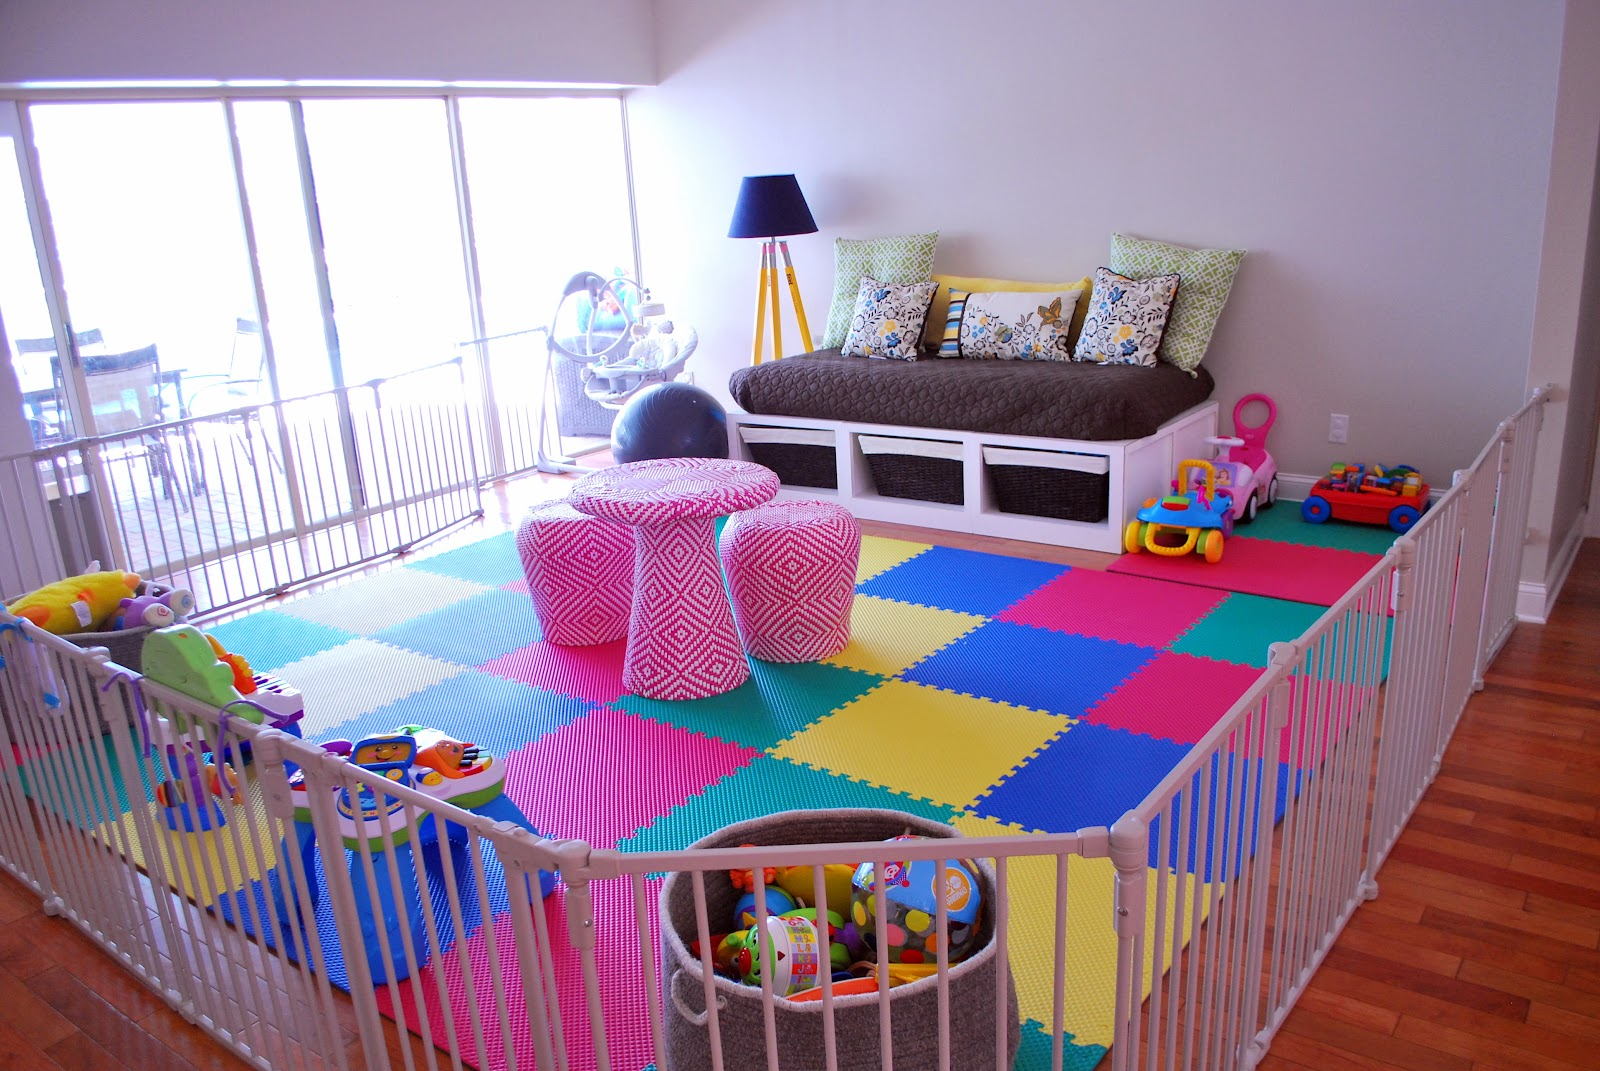 Fenced In Play Area For Baby | Boys Therapy Room | Pinterest | Play Areas,  Plays And Babies